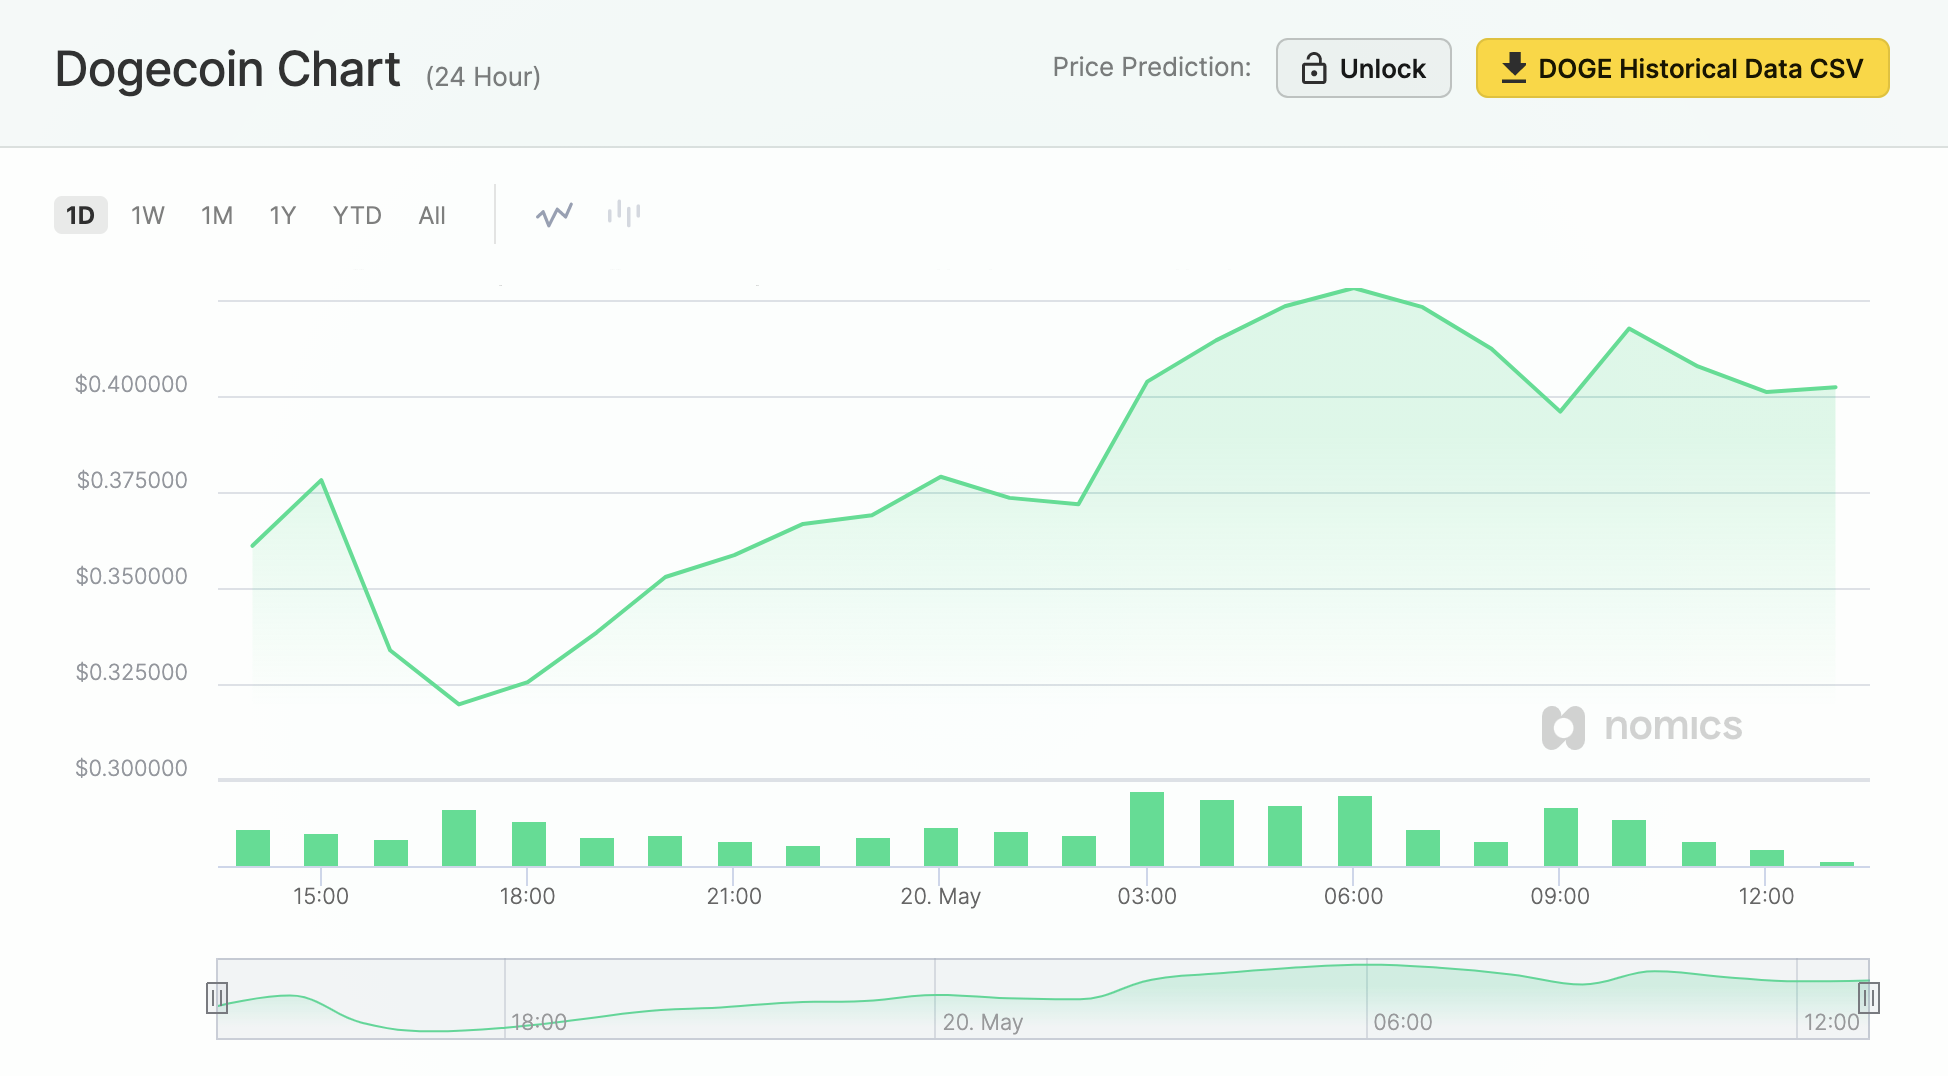 Screenshot of the Dogecoin price on May 20